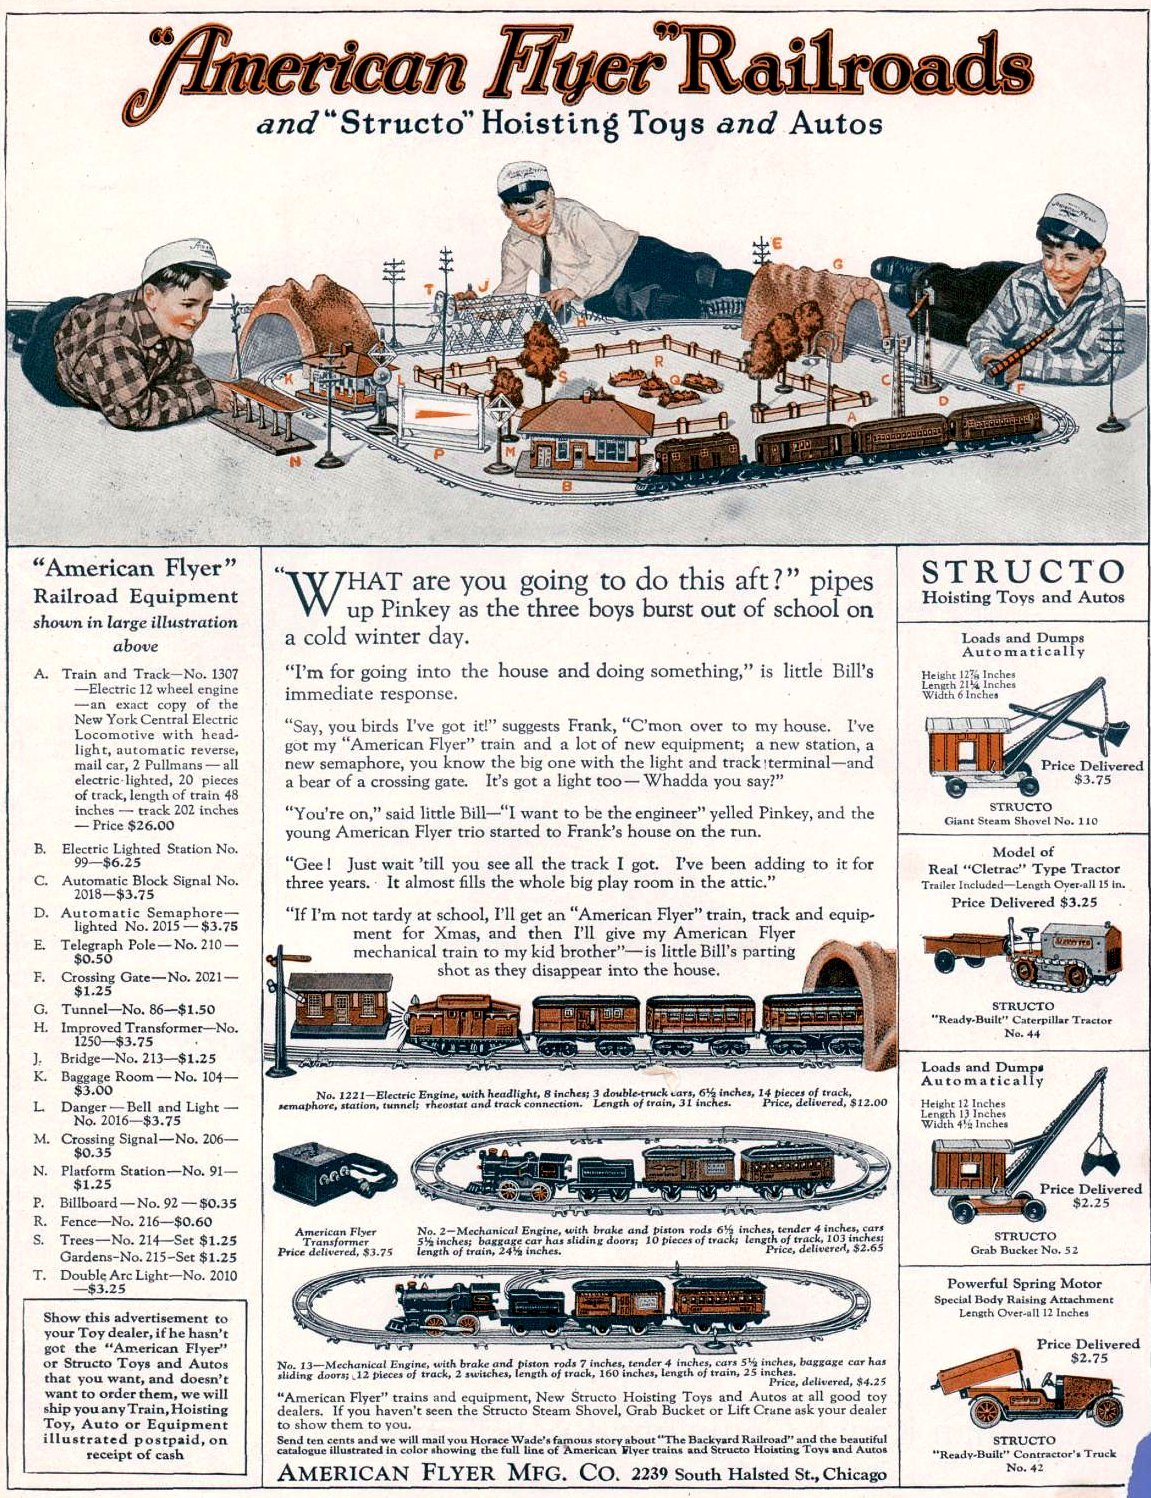 Antique American Flyer railroads from 1924